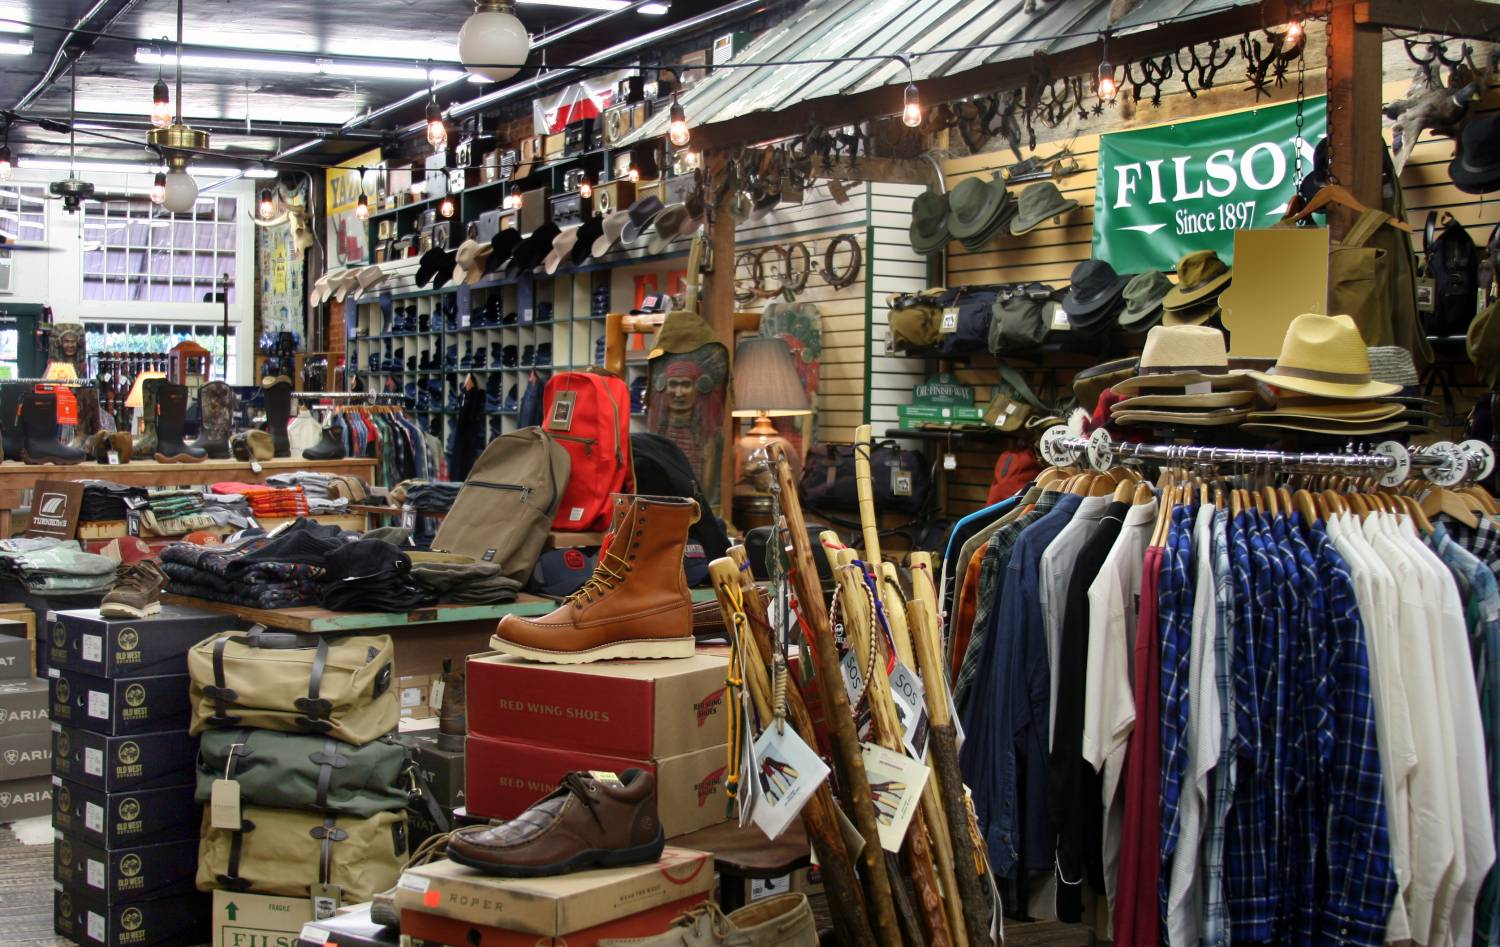 4th Image Front Store